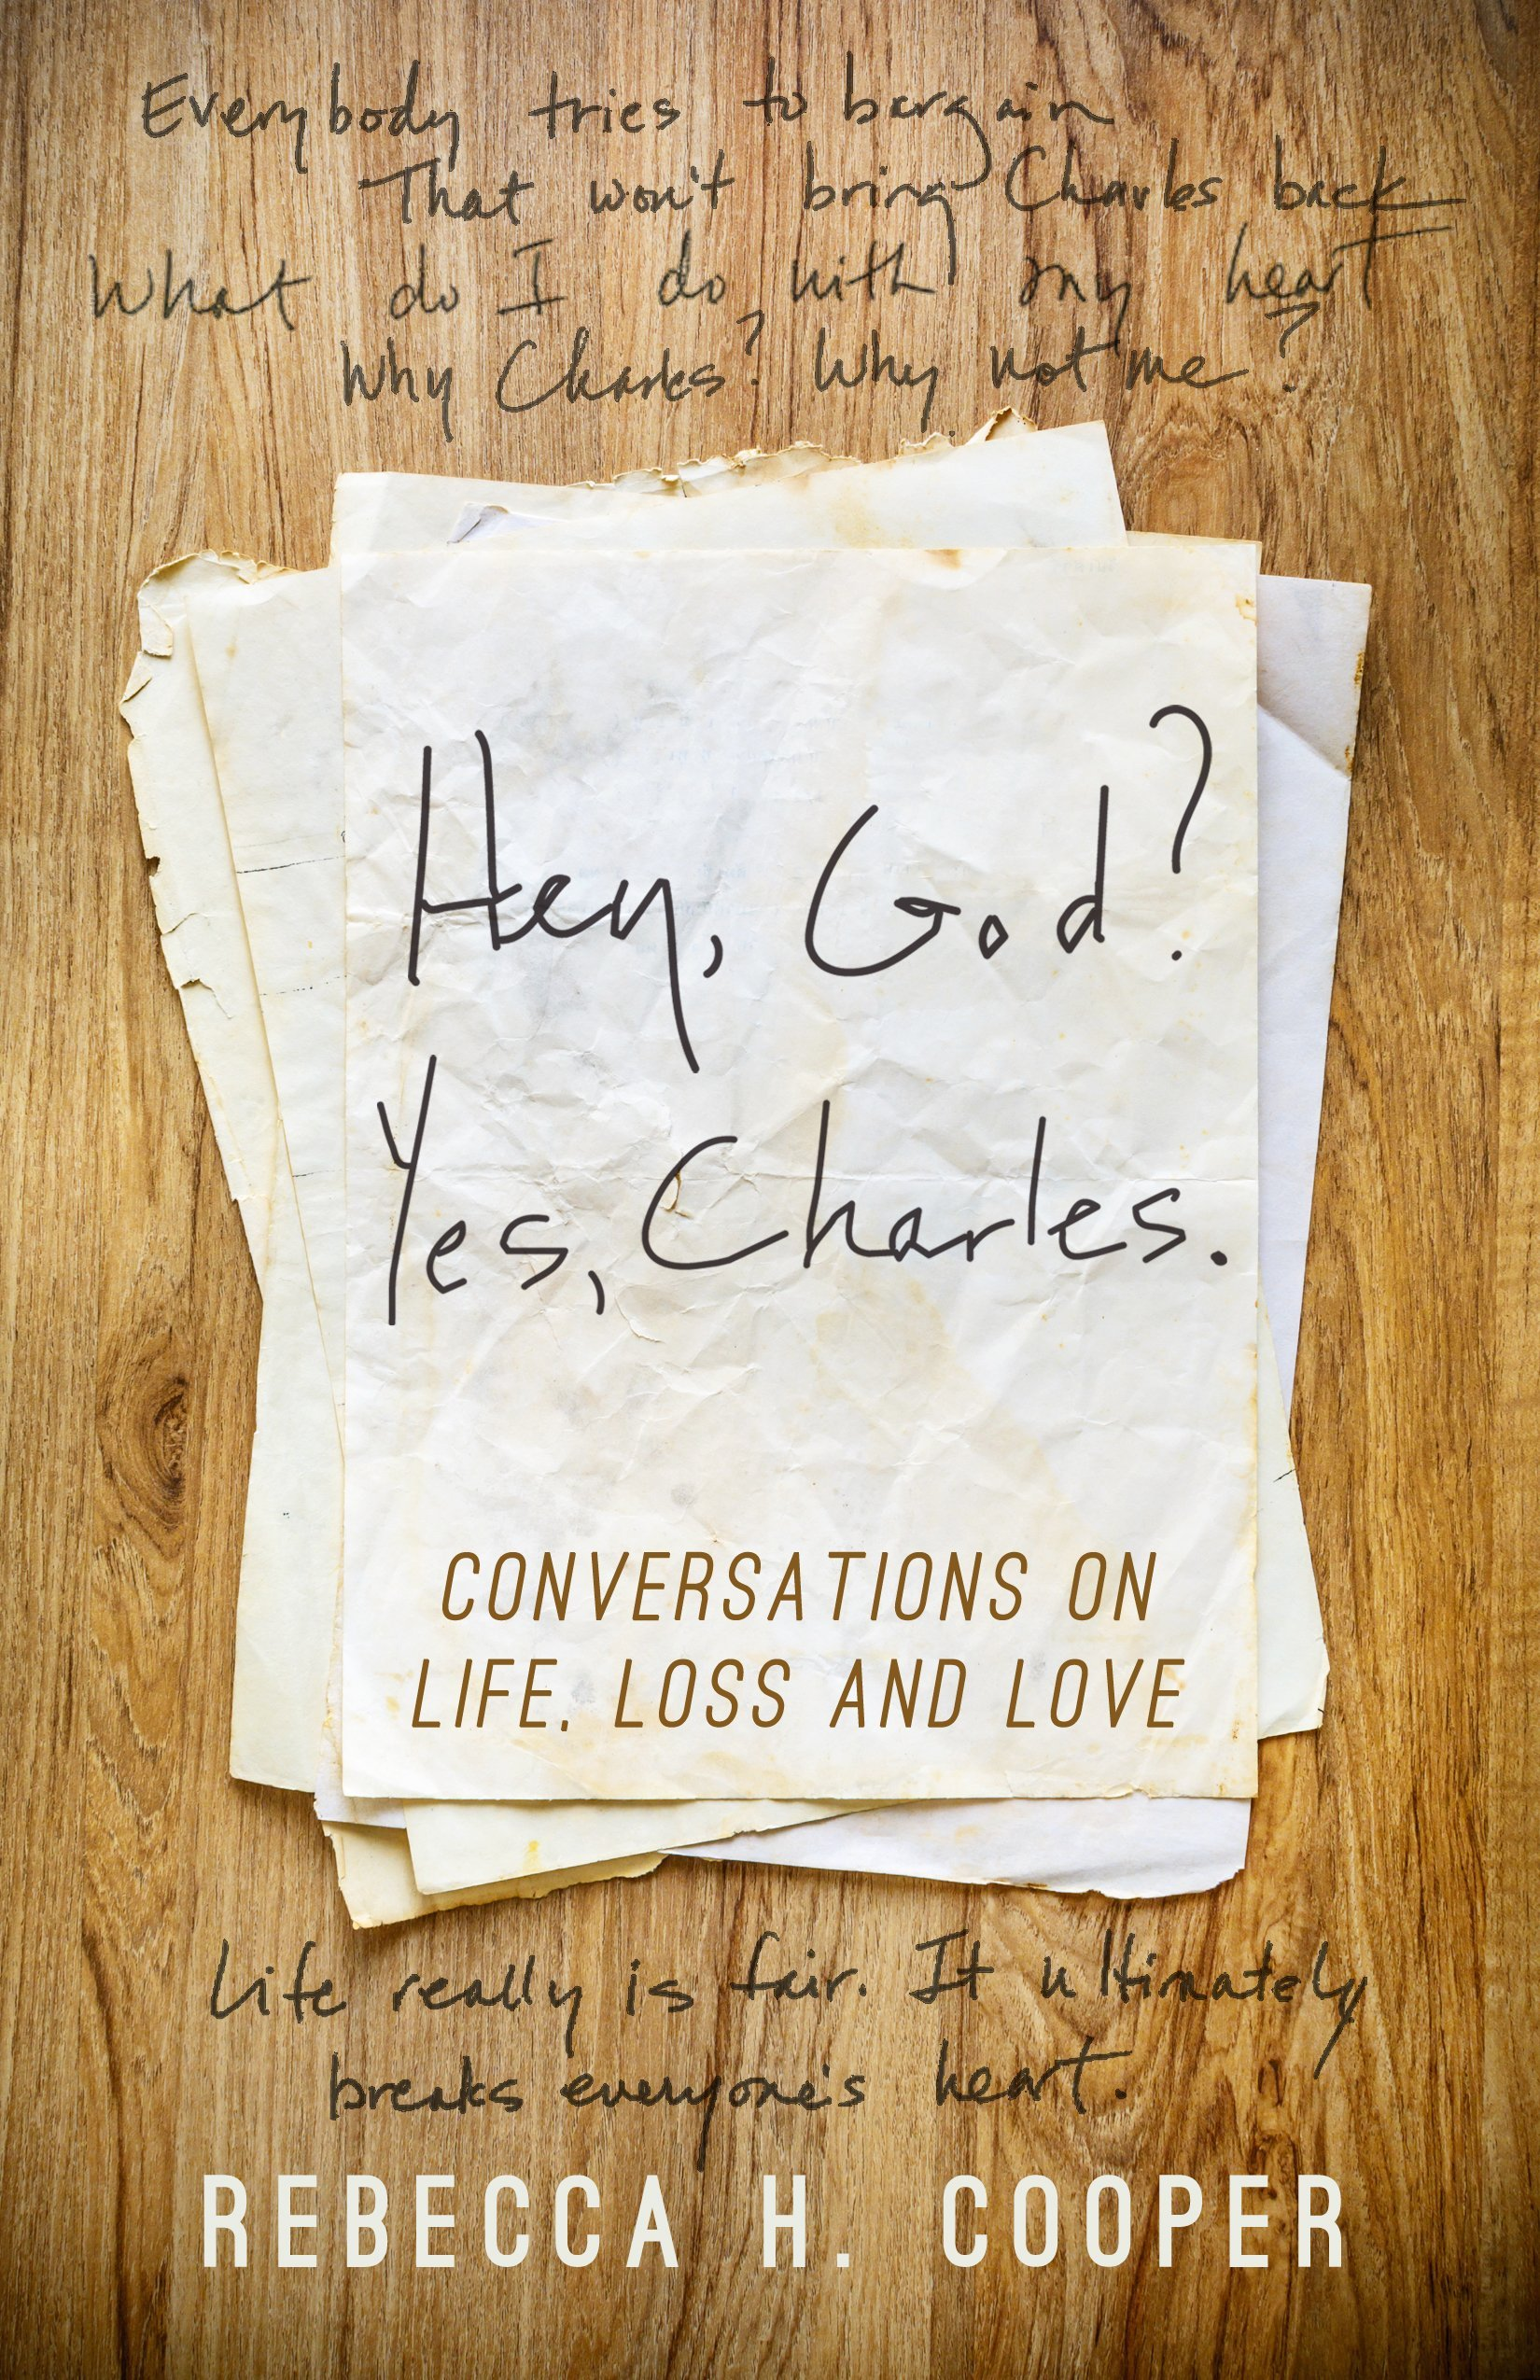 Hey, God? Yes, Charles.: Conversations on Life, Loss and Love Rebecca H. Cooper